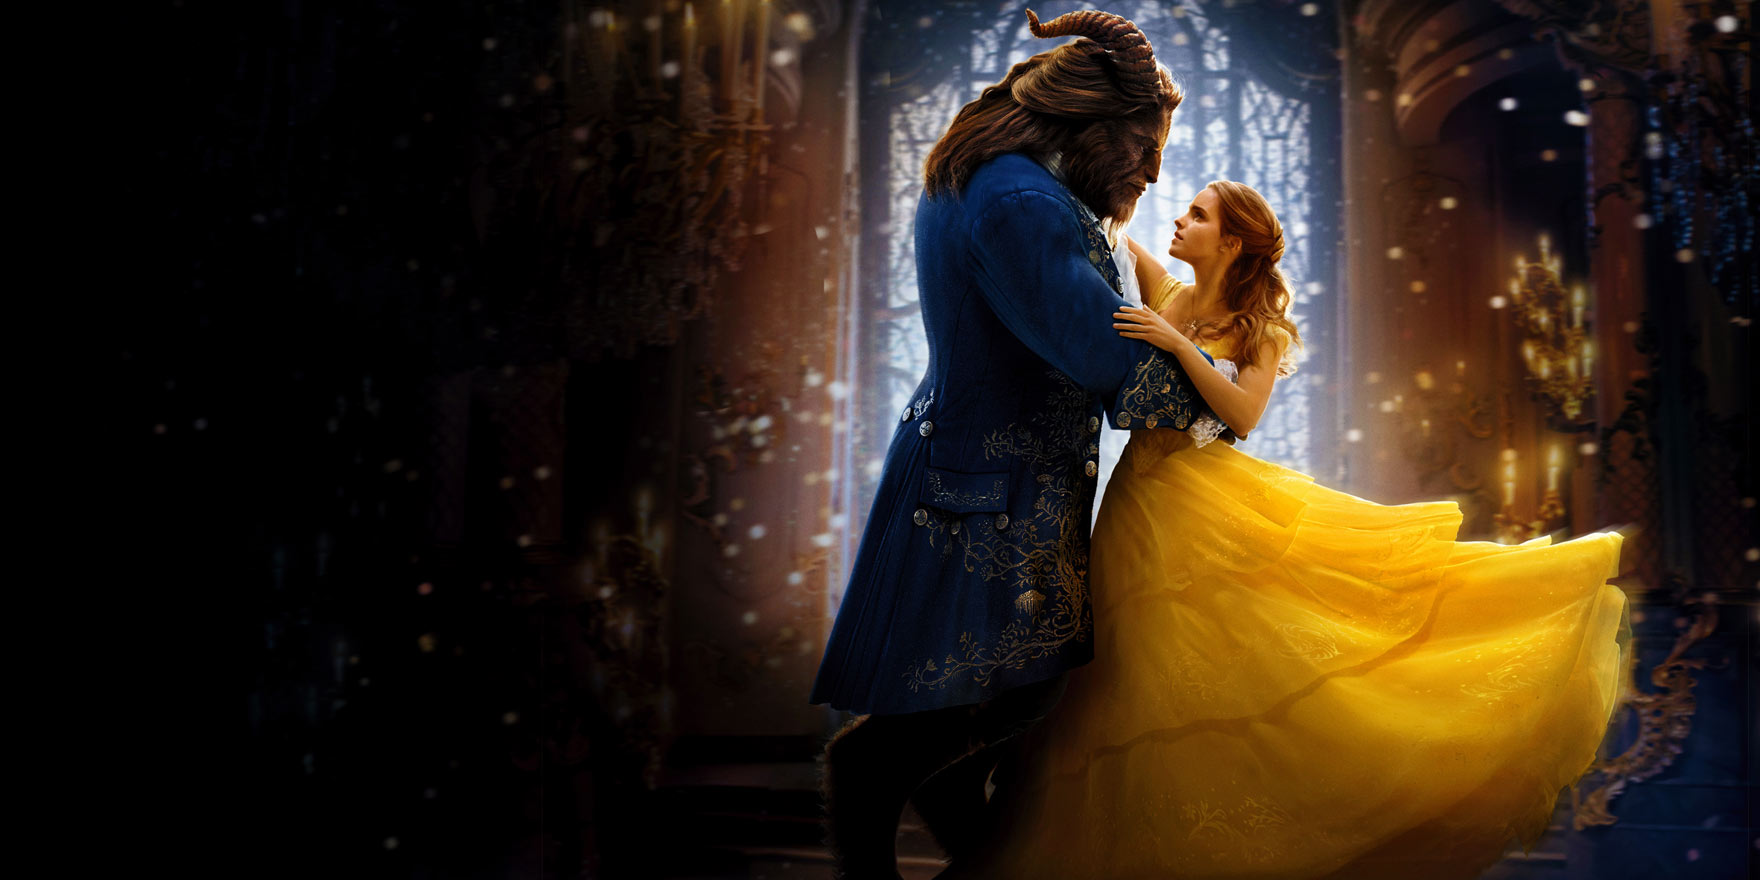 Beauty and the Beast - Header Image